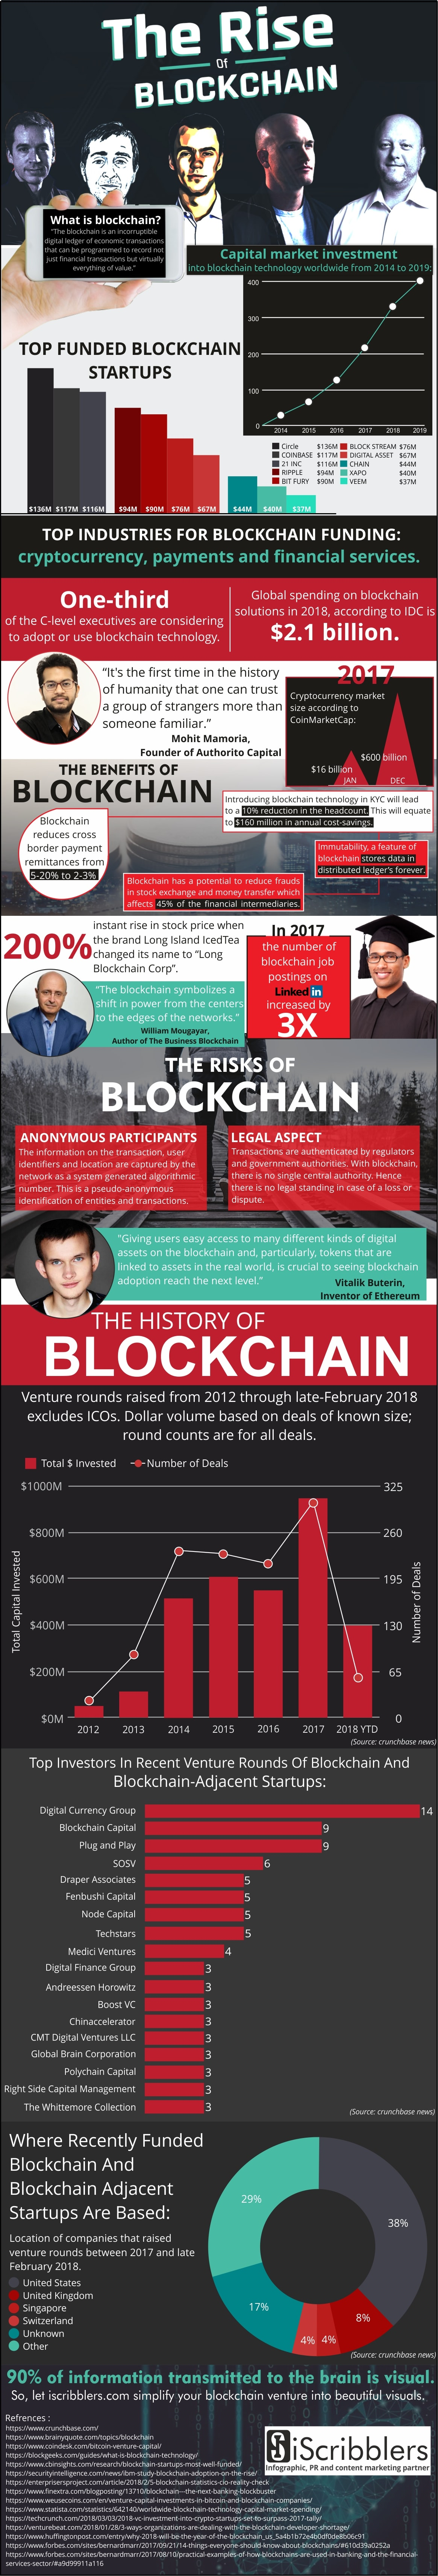 The rise of blockchain-infographic-iscribblers